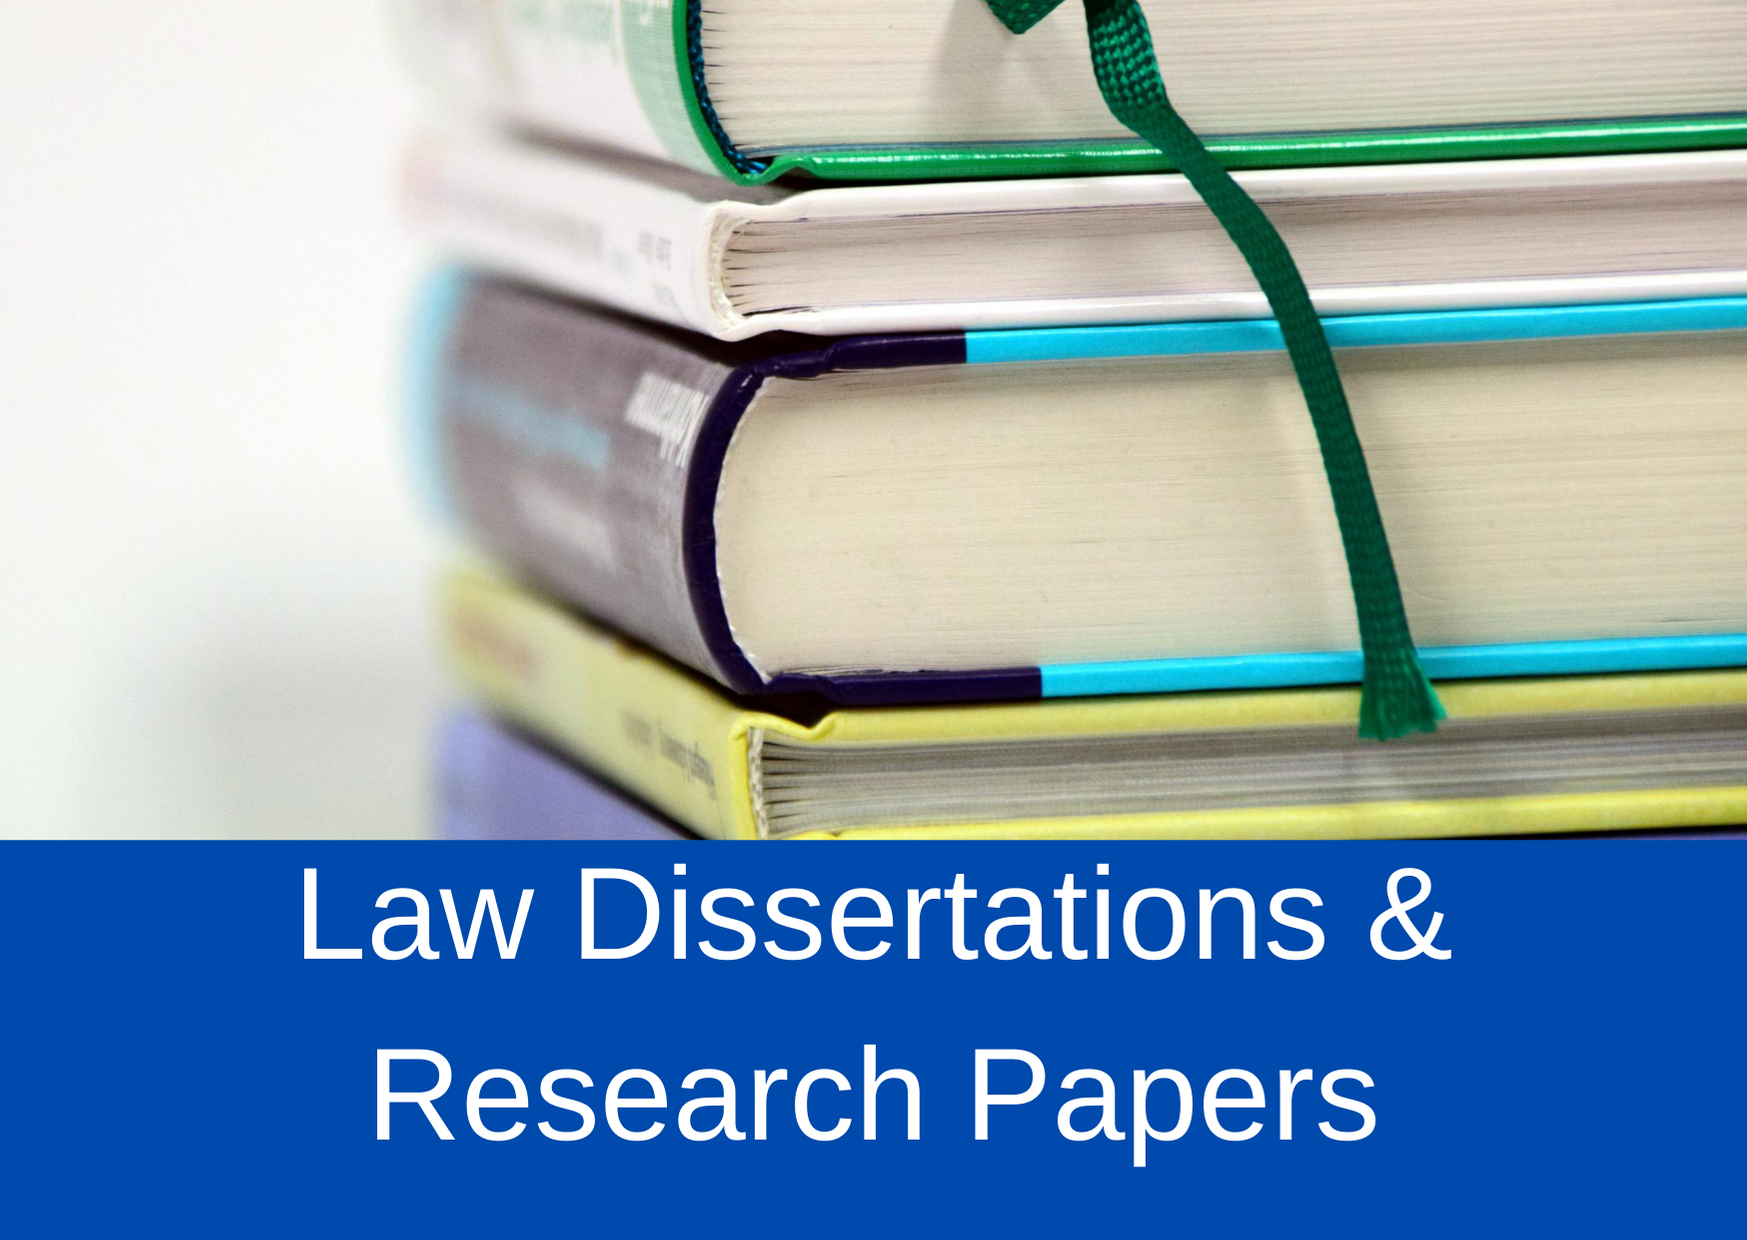 Law Dissertations & Research Papers